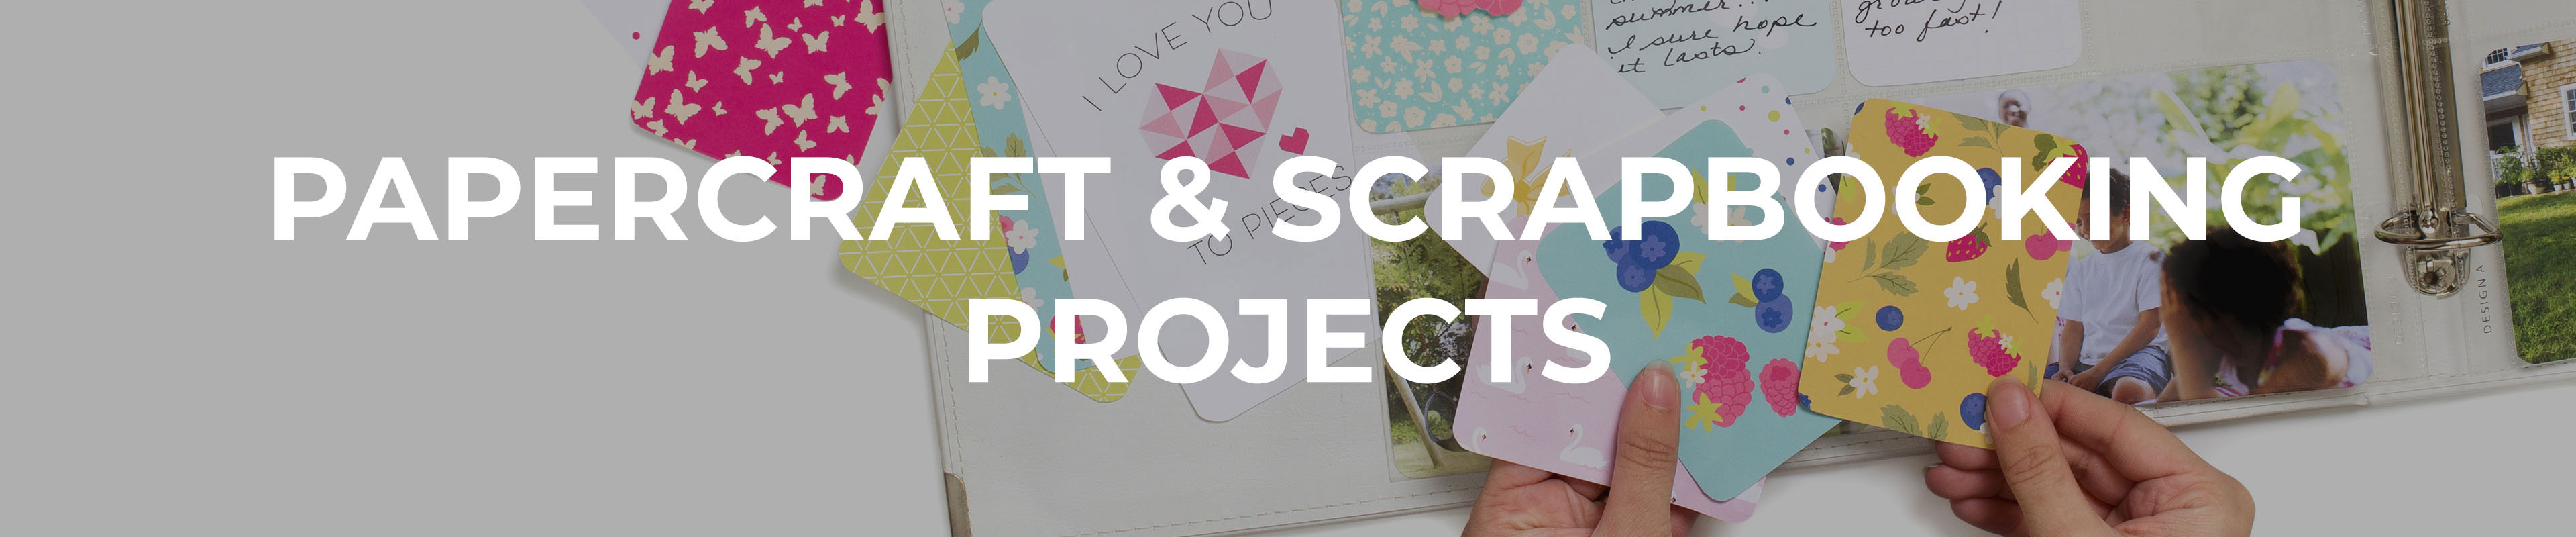 Papercraft & Scrapbooking Projects